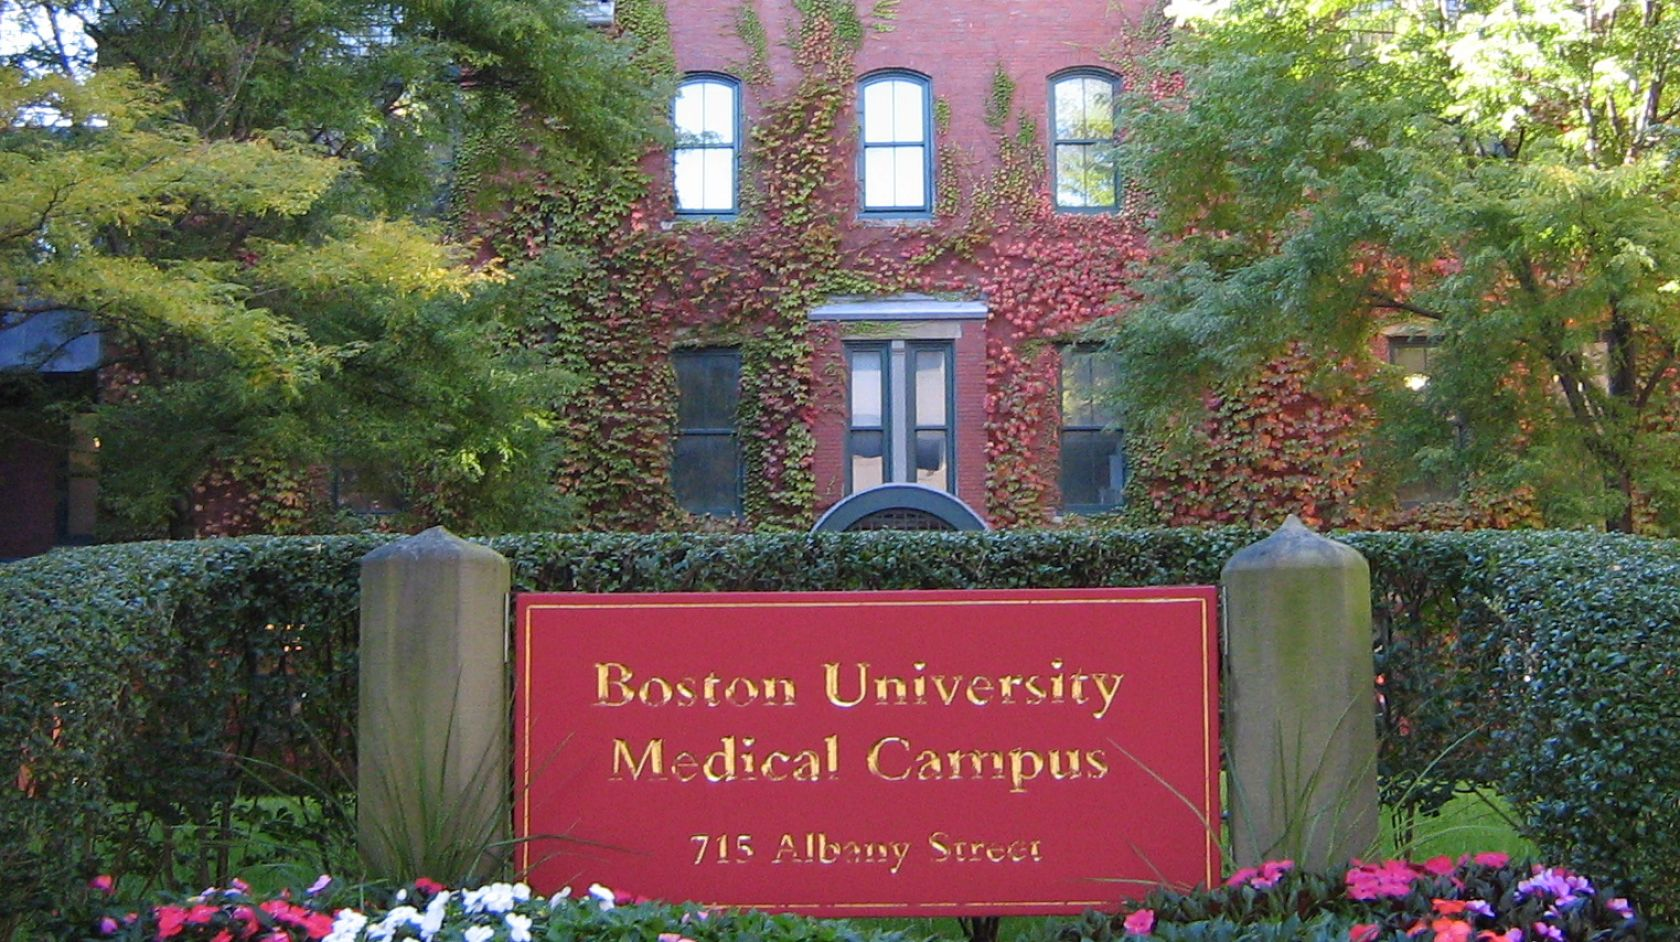 Boston University medical campus exterior